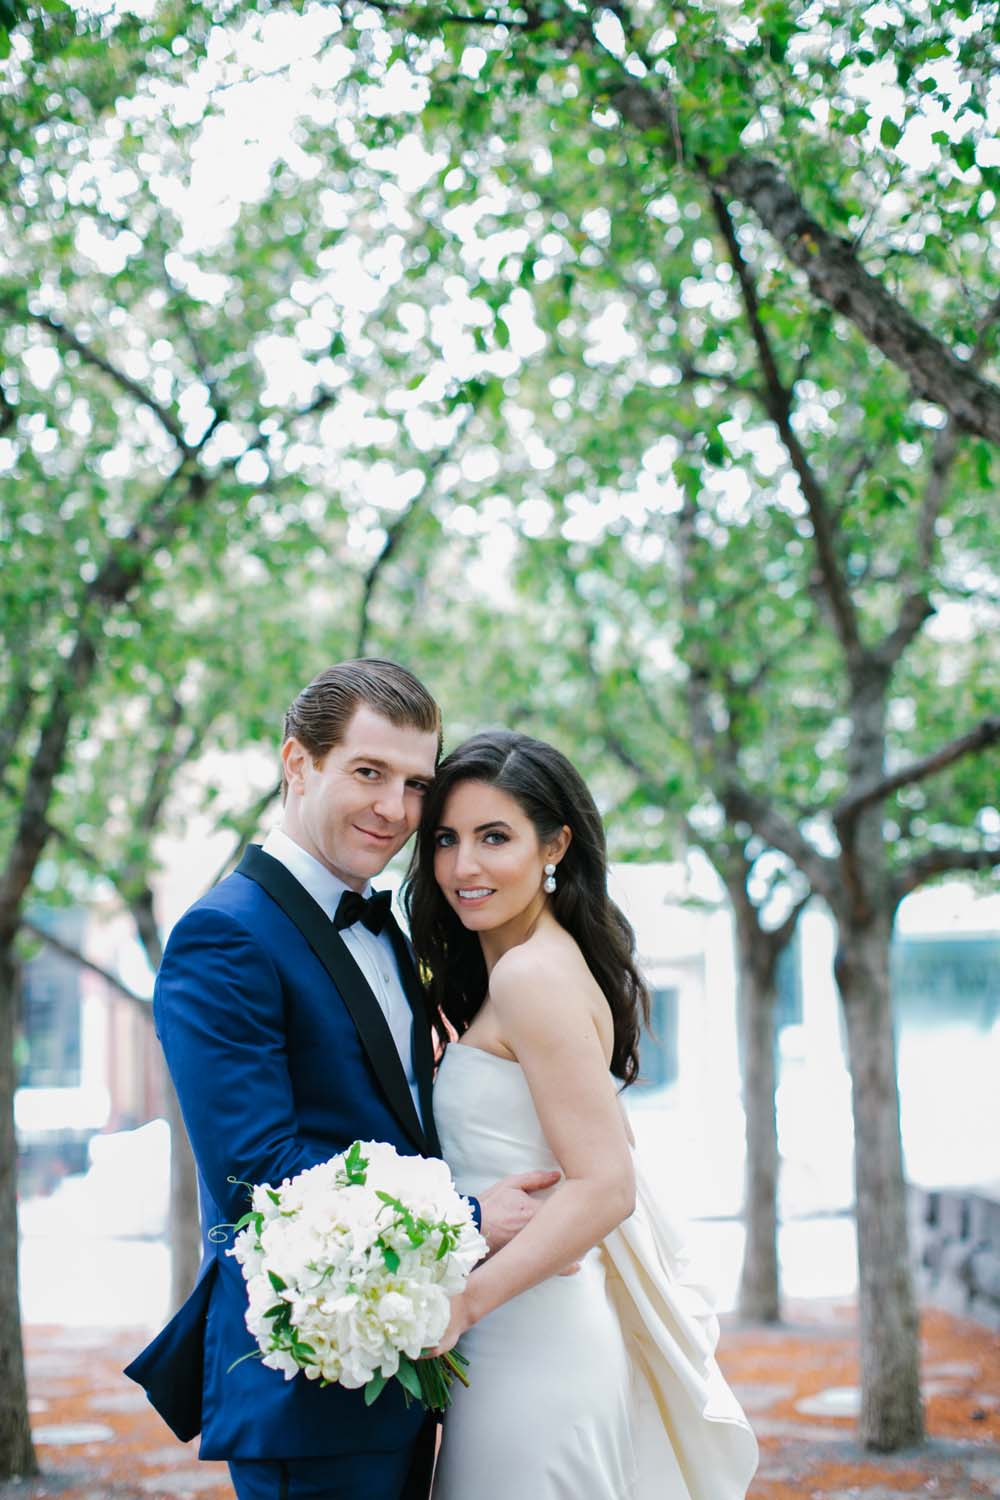 a sophisticated wedding in downtown toronto - bride and groom